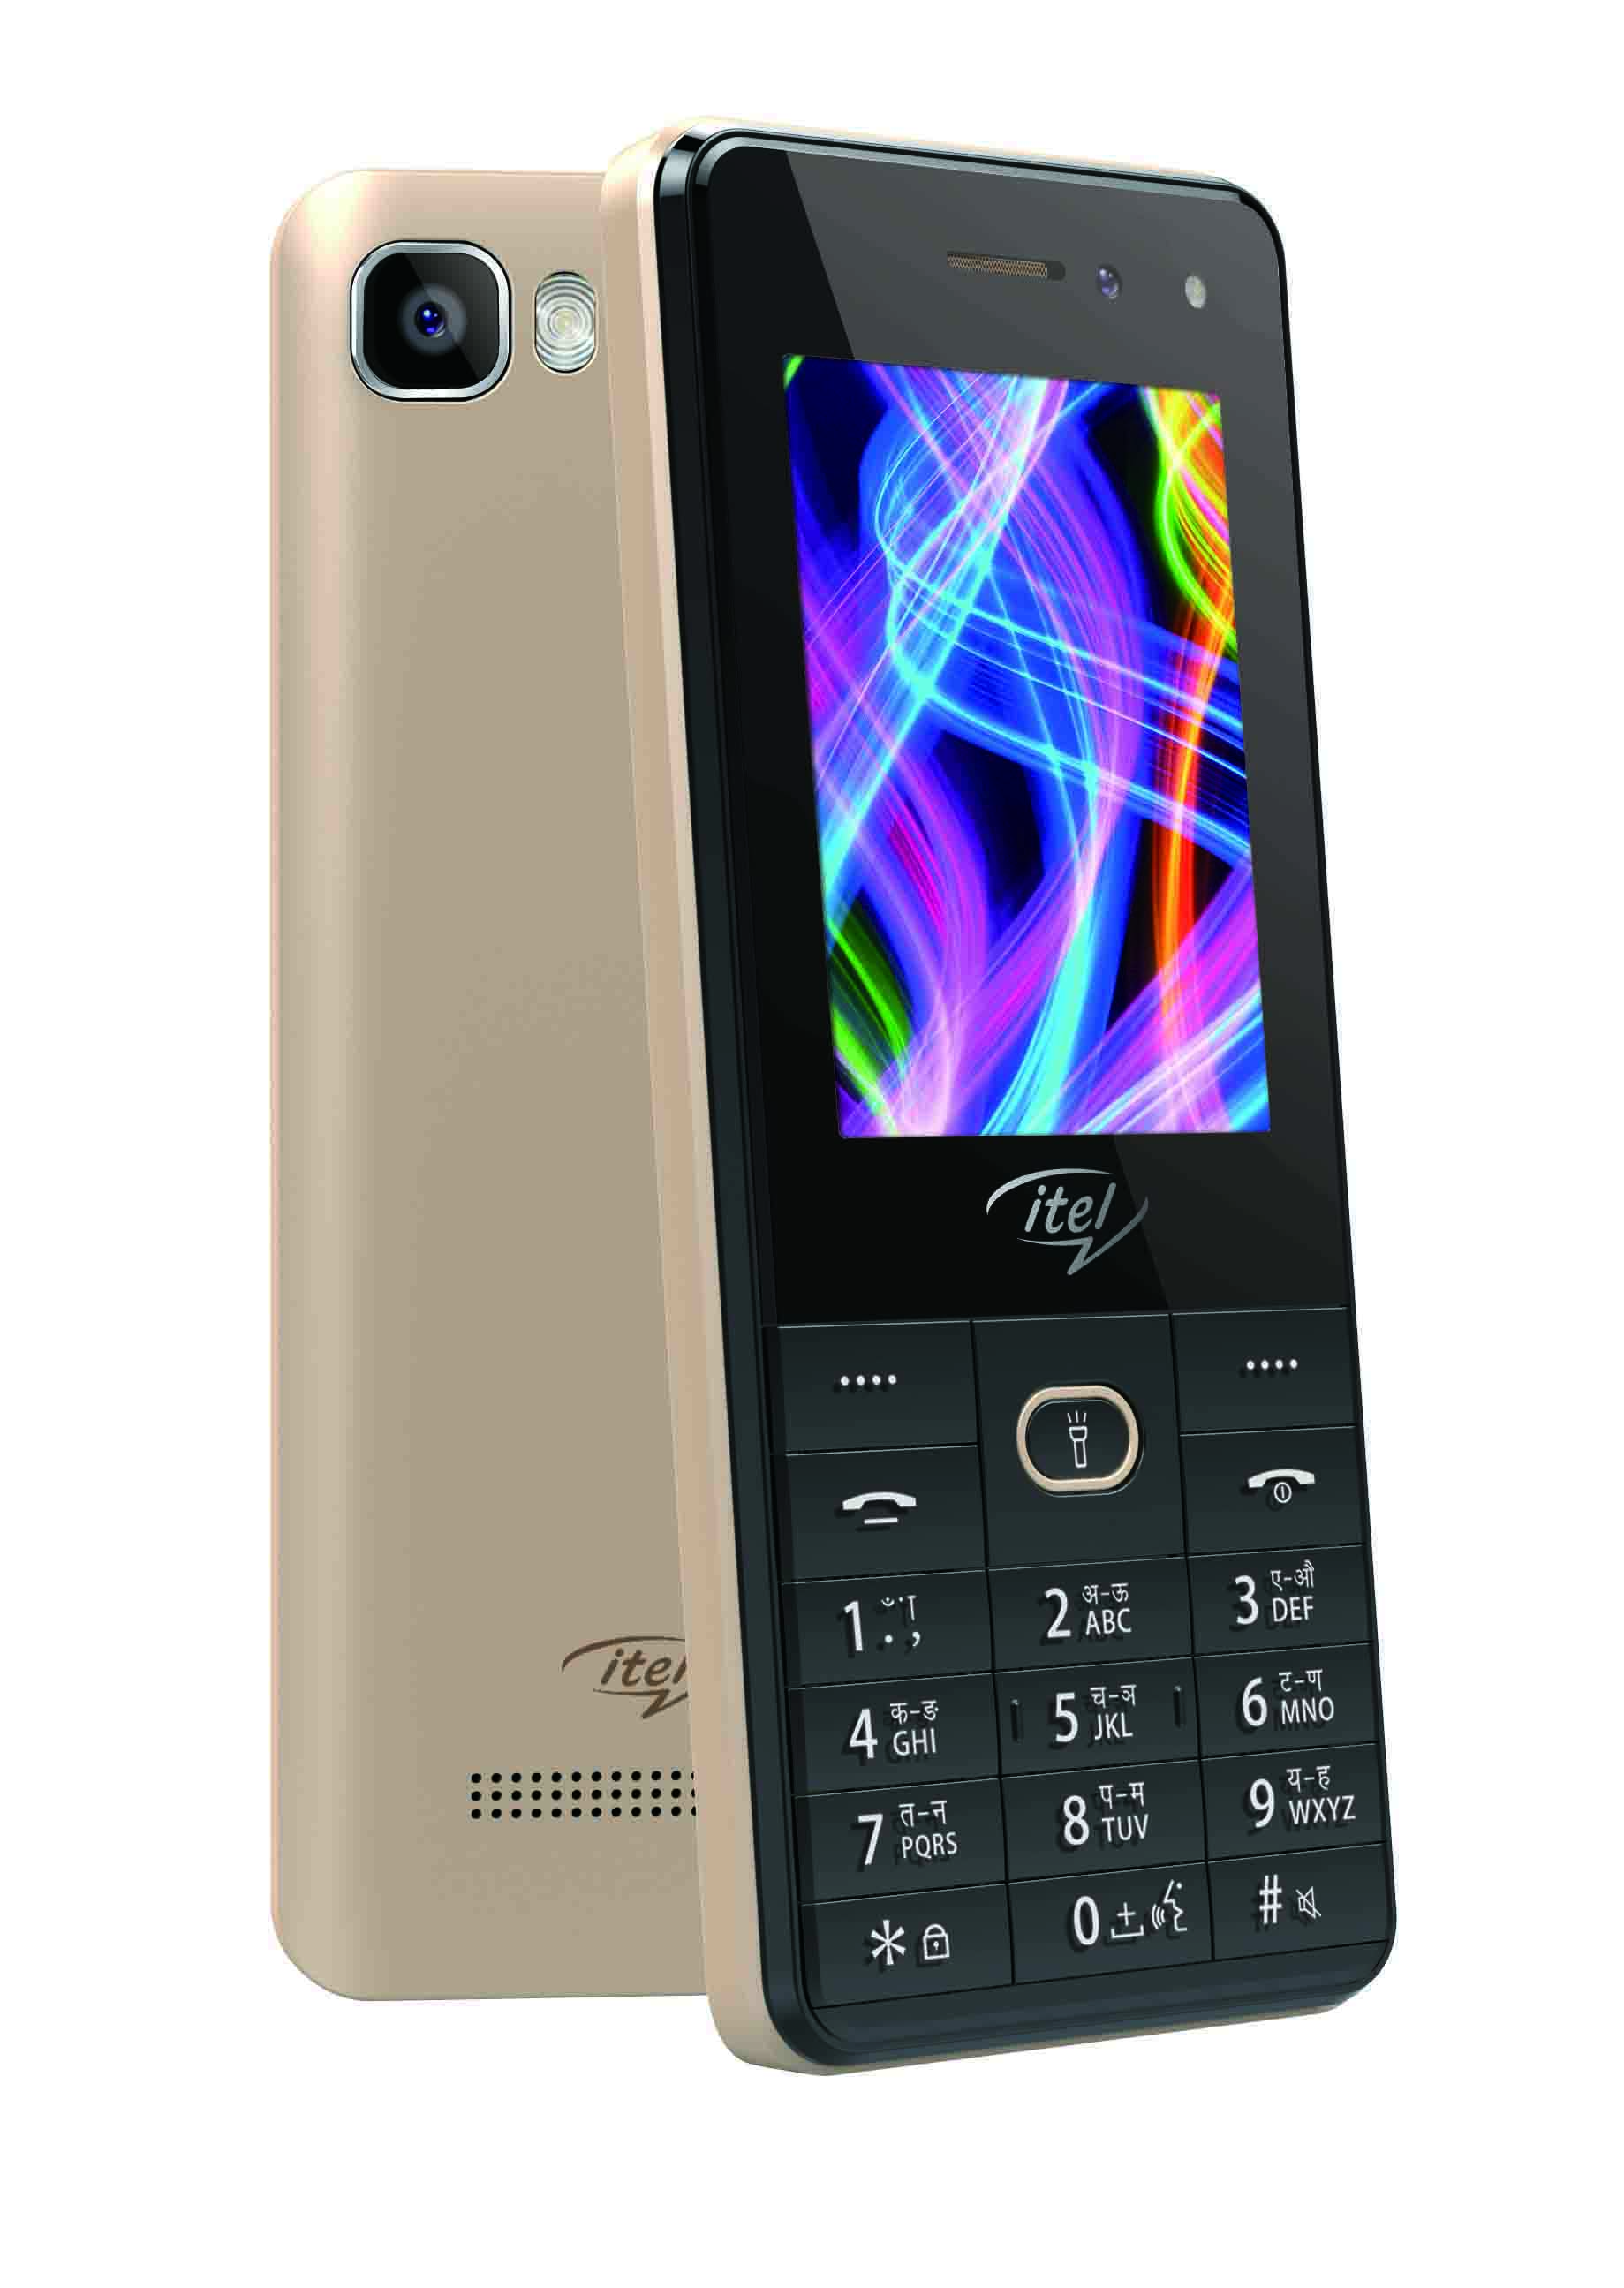 itel forays in India with Wish it1508 & SelfiePro it1511, 2 champion products with superior functionalities & competent pricing